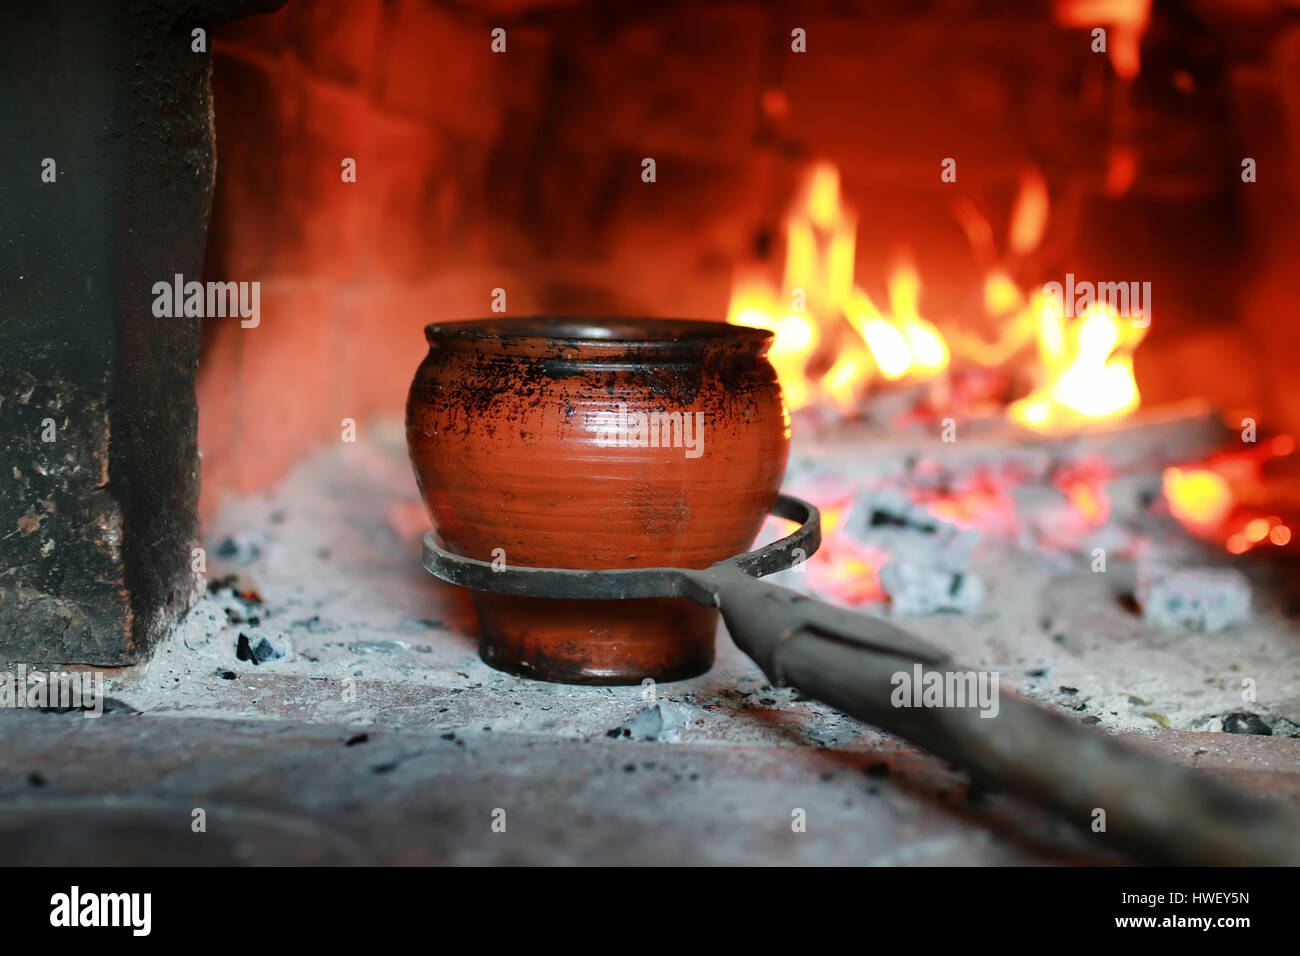 pot in the oven with food the oven fork - Stock Image